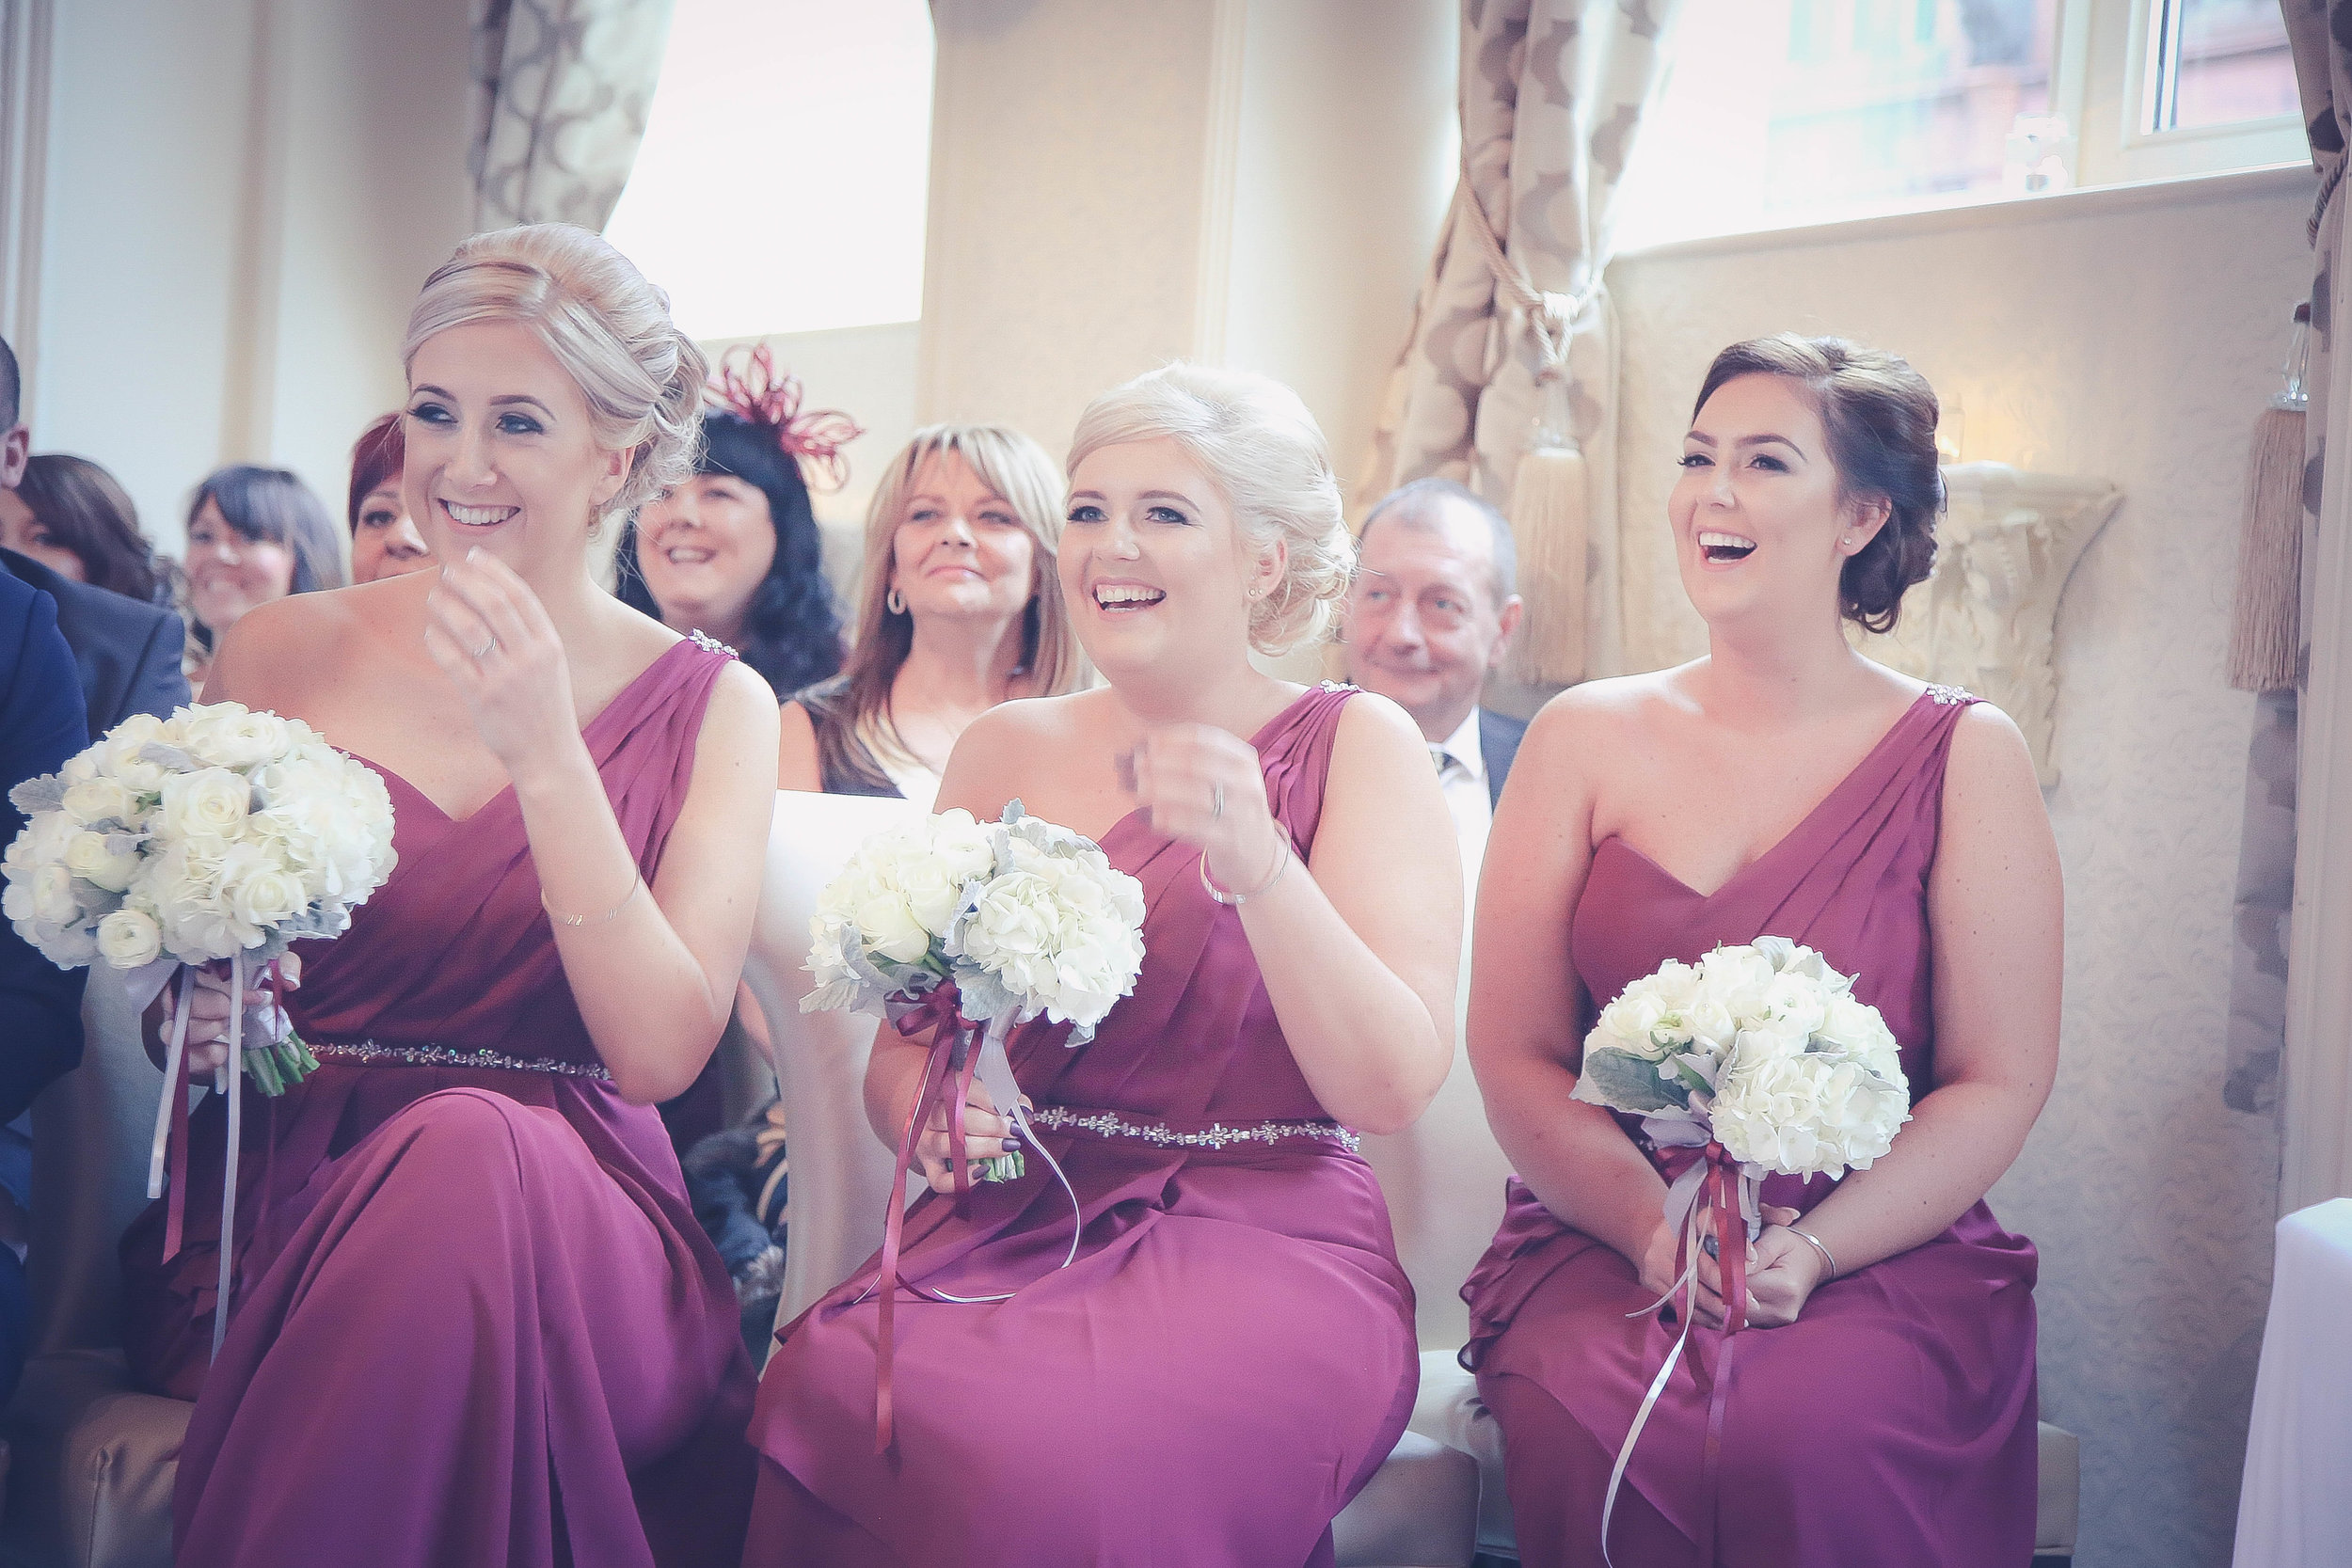 Weddings at the shankly hotel liverpool-69.jpg